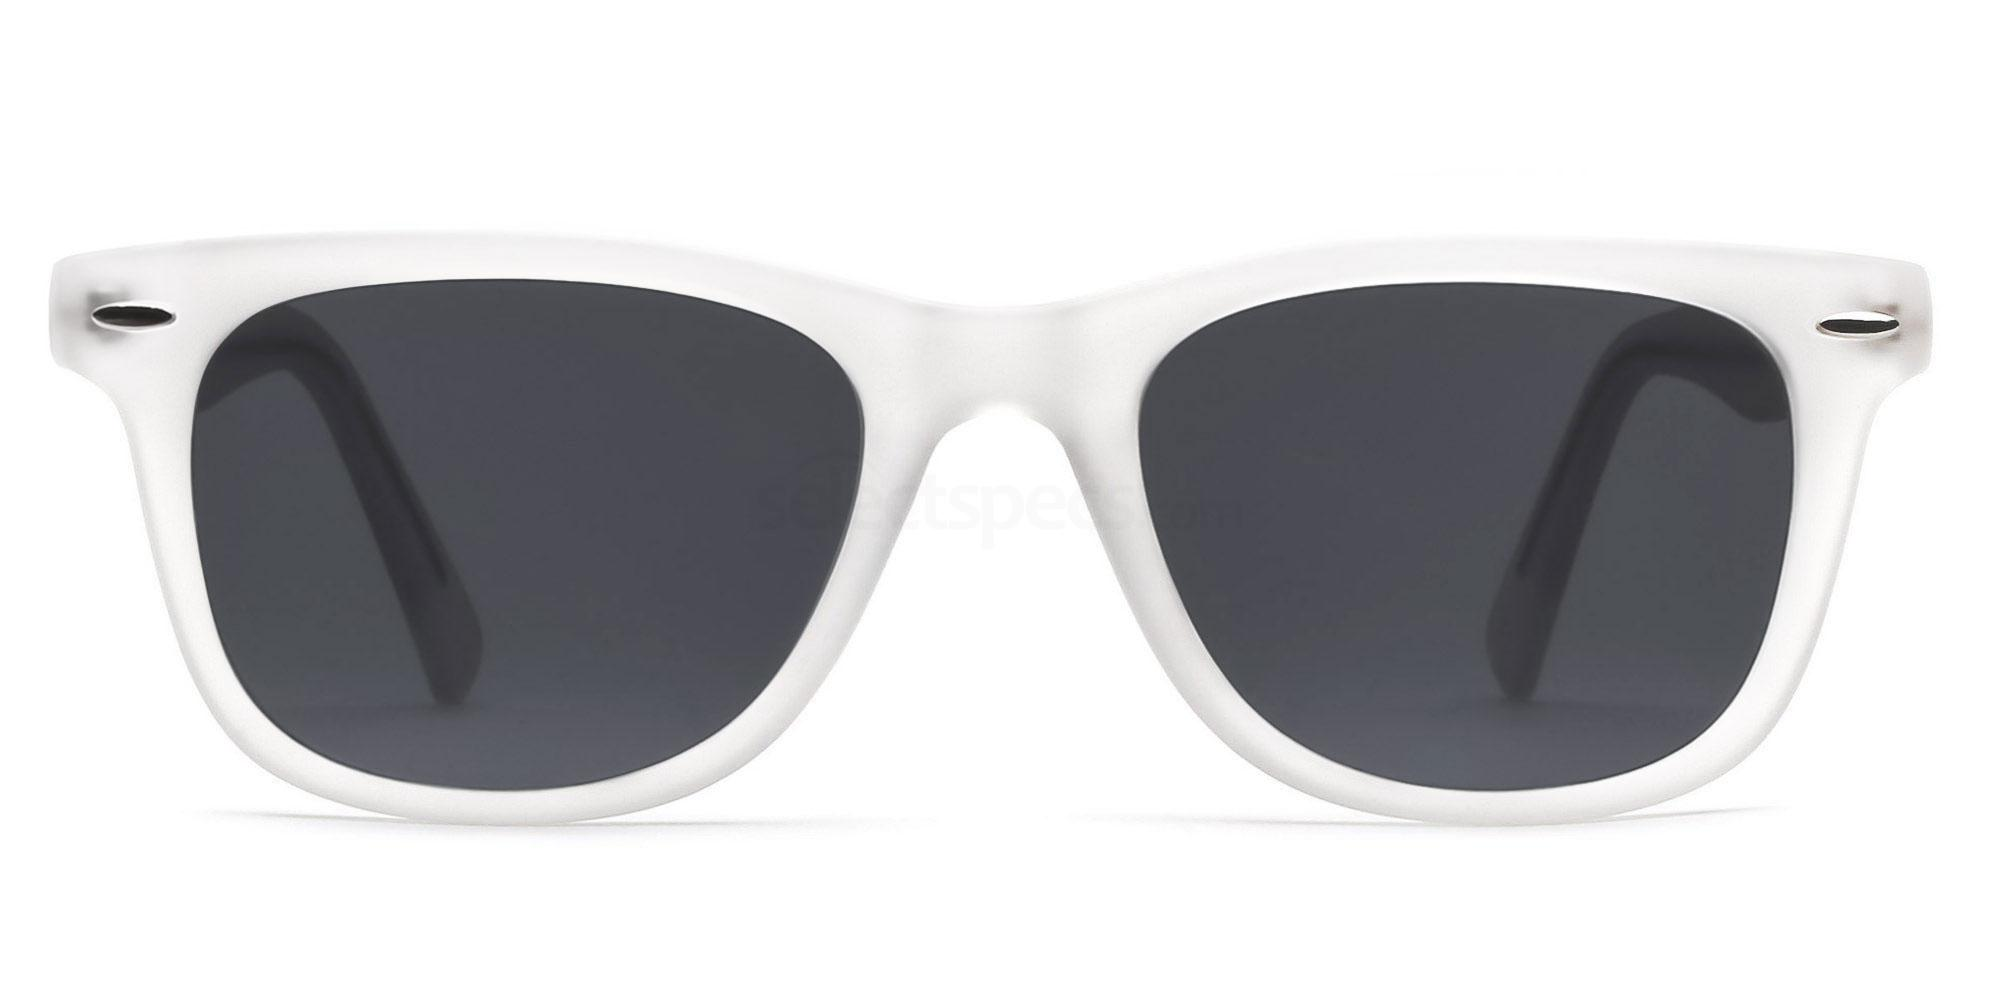 Savanah 8121 Clear Transparent Sunglasses on Budget at SelectSpecs